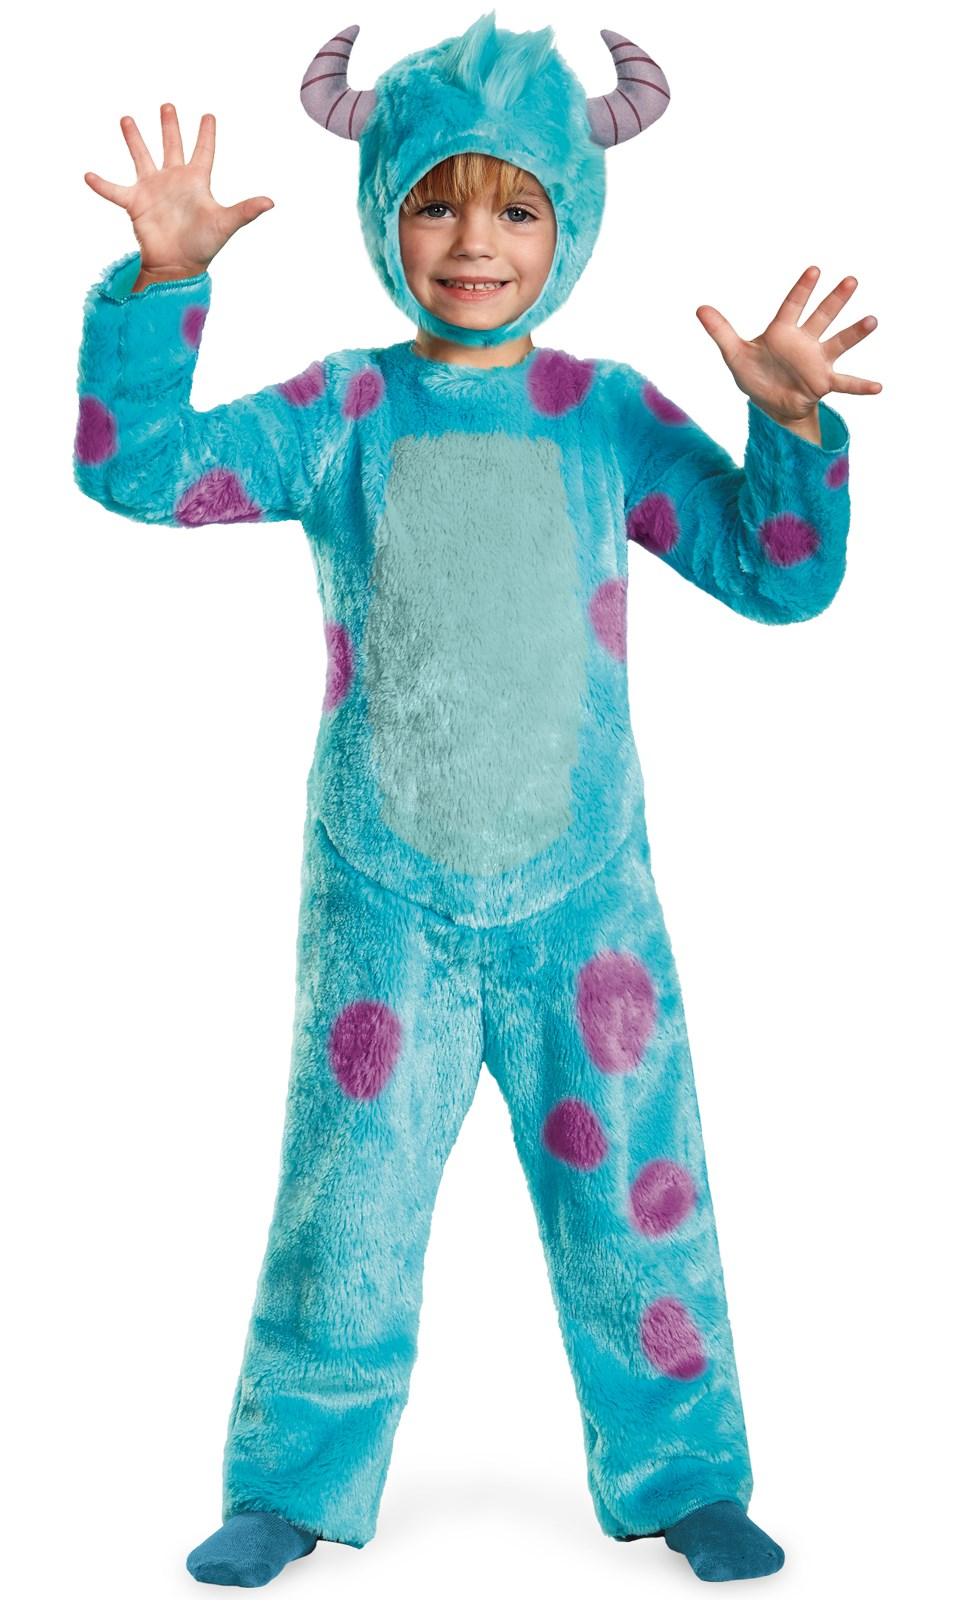 Monsters University Sulley Deluxe Toddler / Child Costume 2T